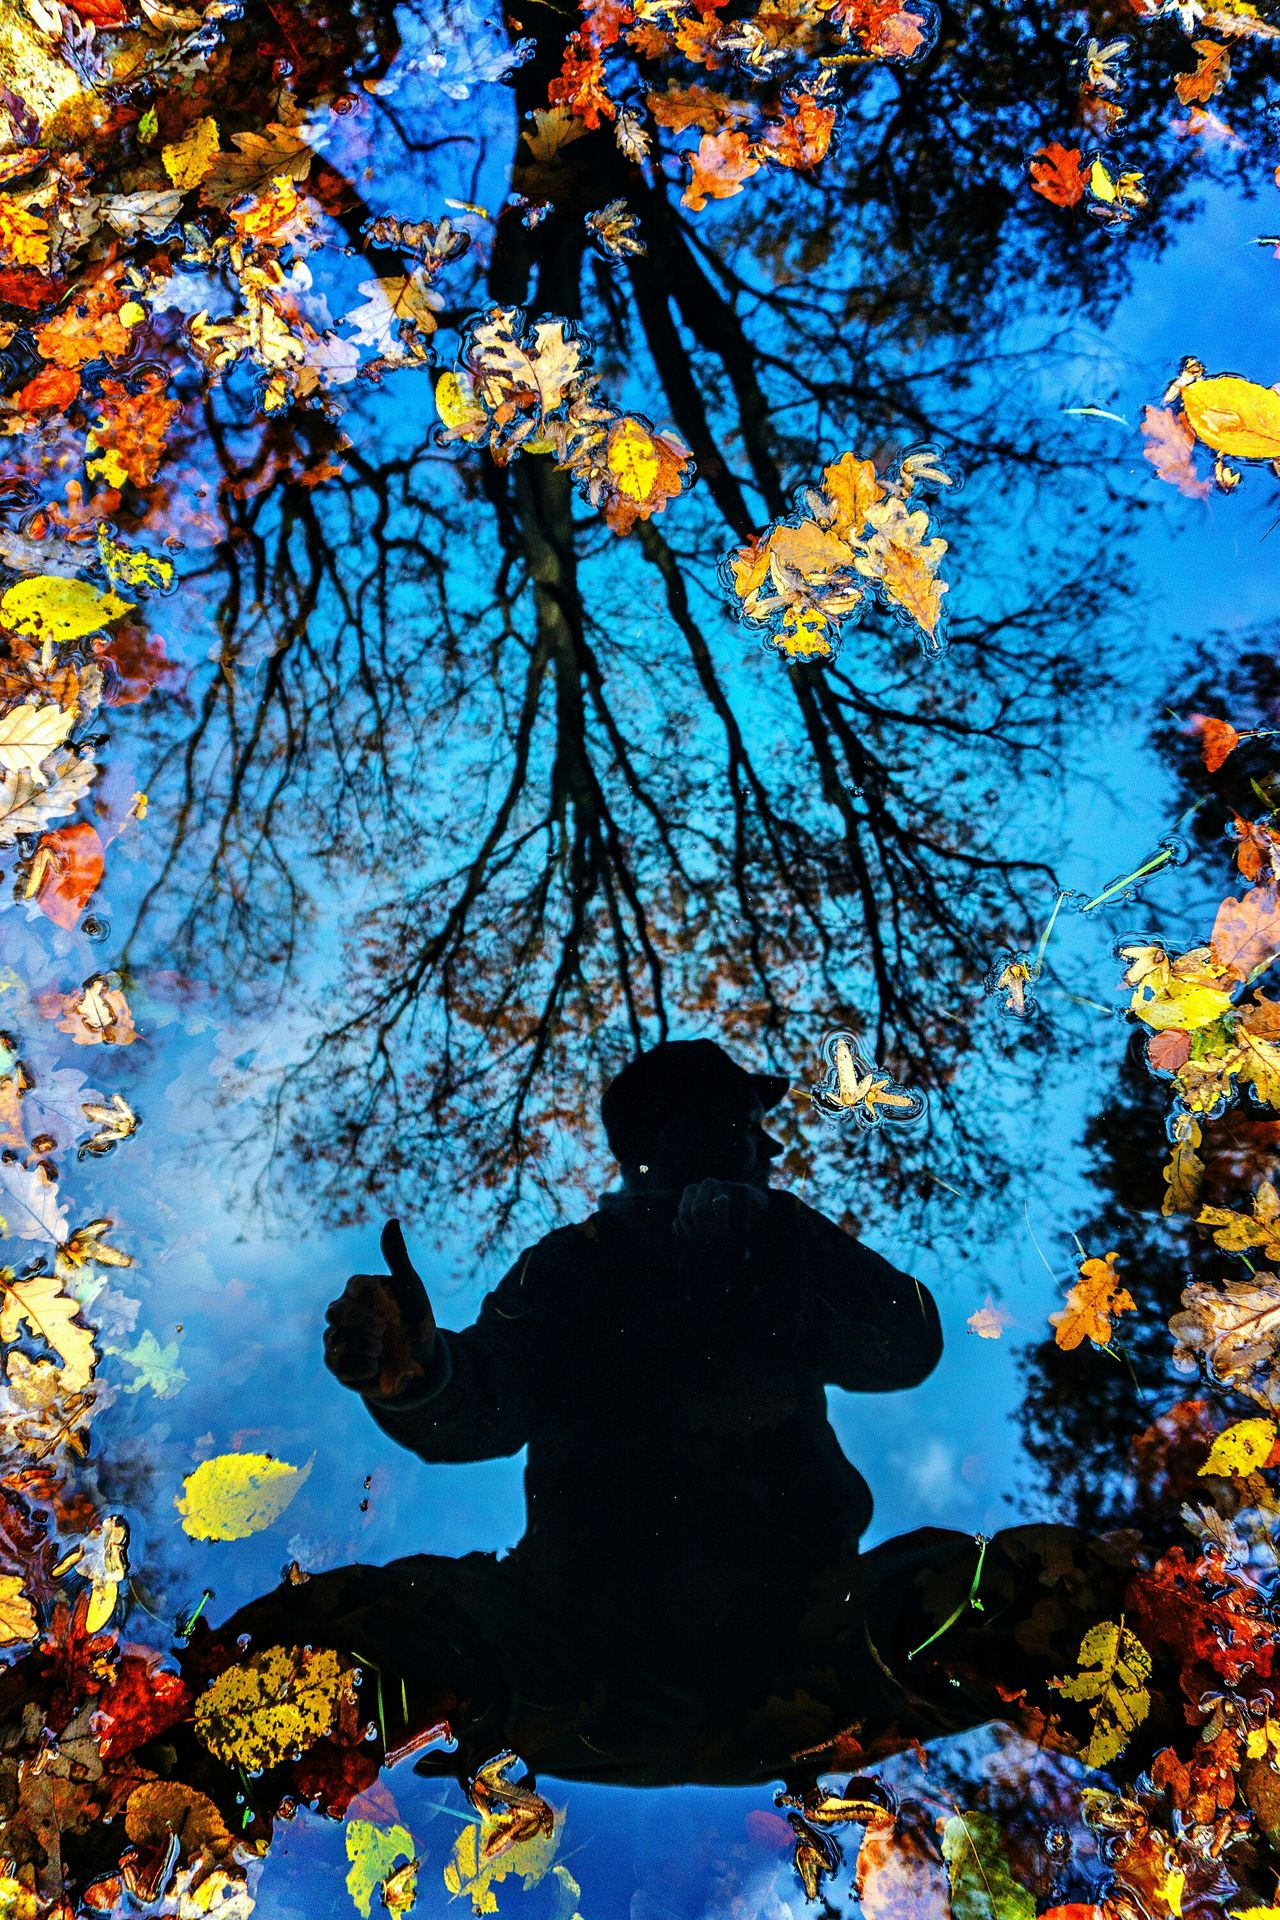 Bon dimanche ! One Person Tree Silhouette Real People Lifestyles Rear View Sky Outdoors Day Men Warm Clothing Nature People Adults Only One Man Only Adult Multi Colored Autumn Colors Reflection Water Leaf Waterfront Puddle Textured  Self Portrait Around The World